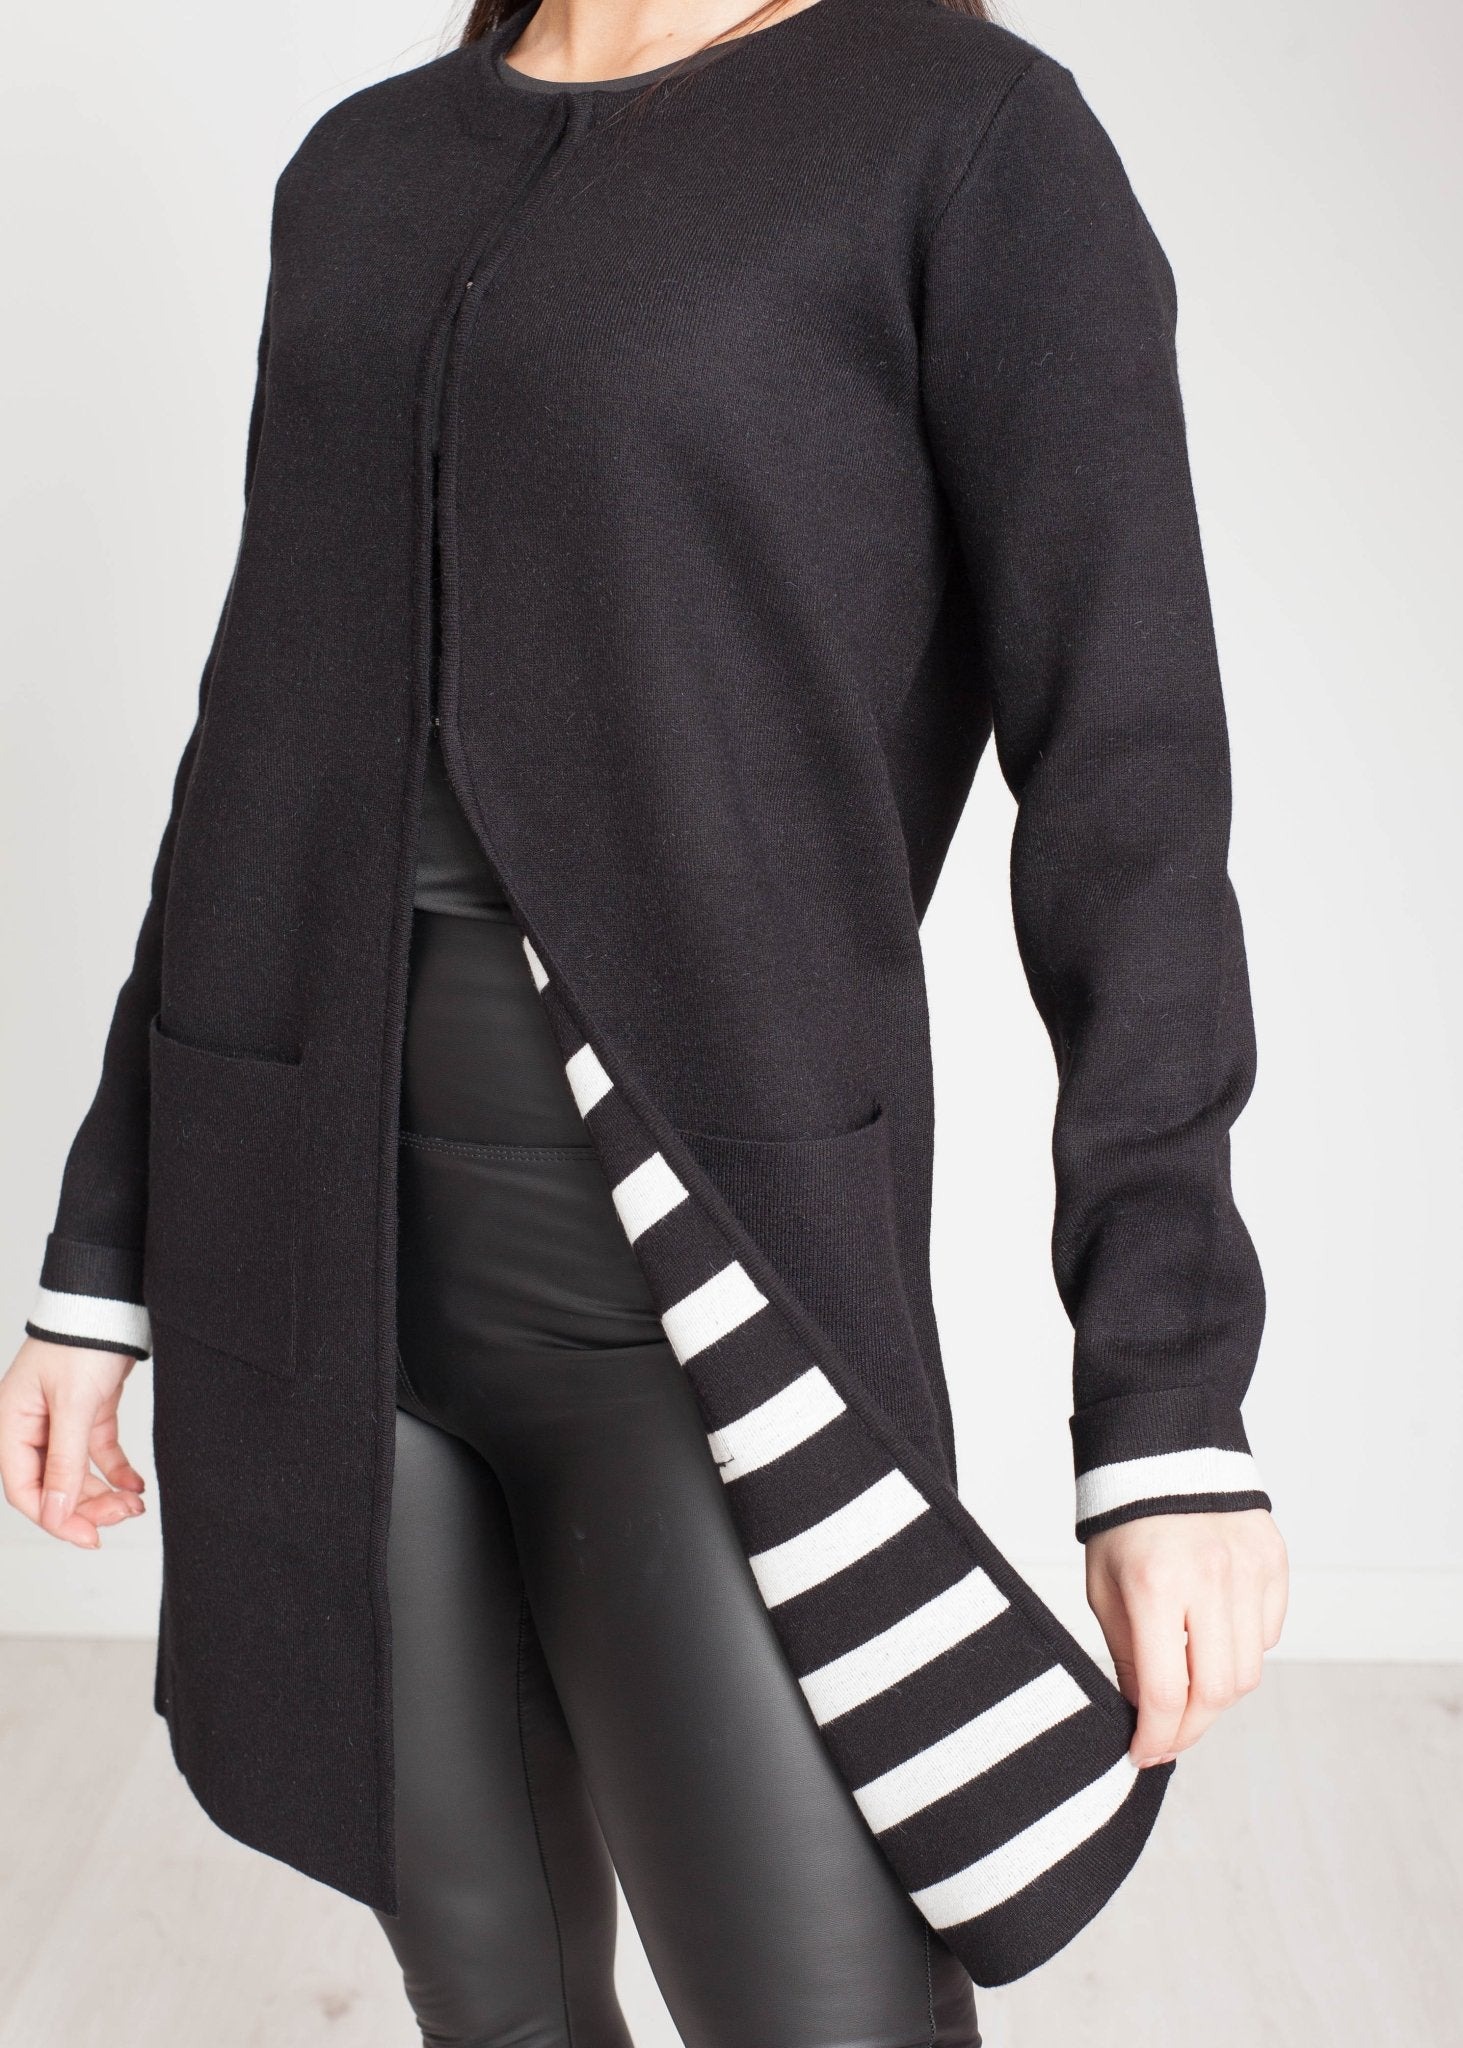 Tina Longline Cardigan In Black - The Walk in Wardrobe